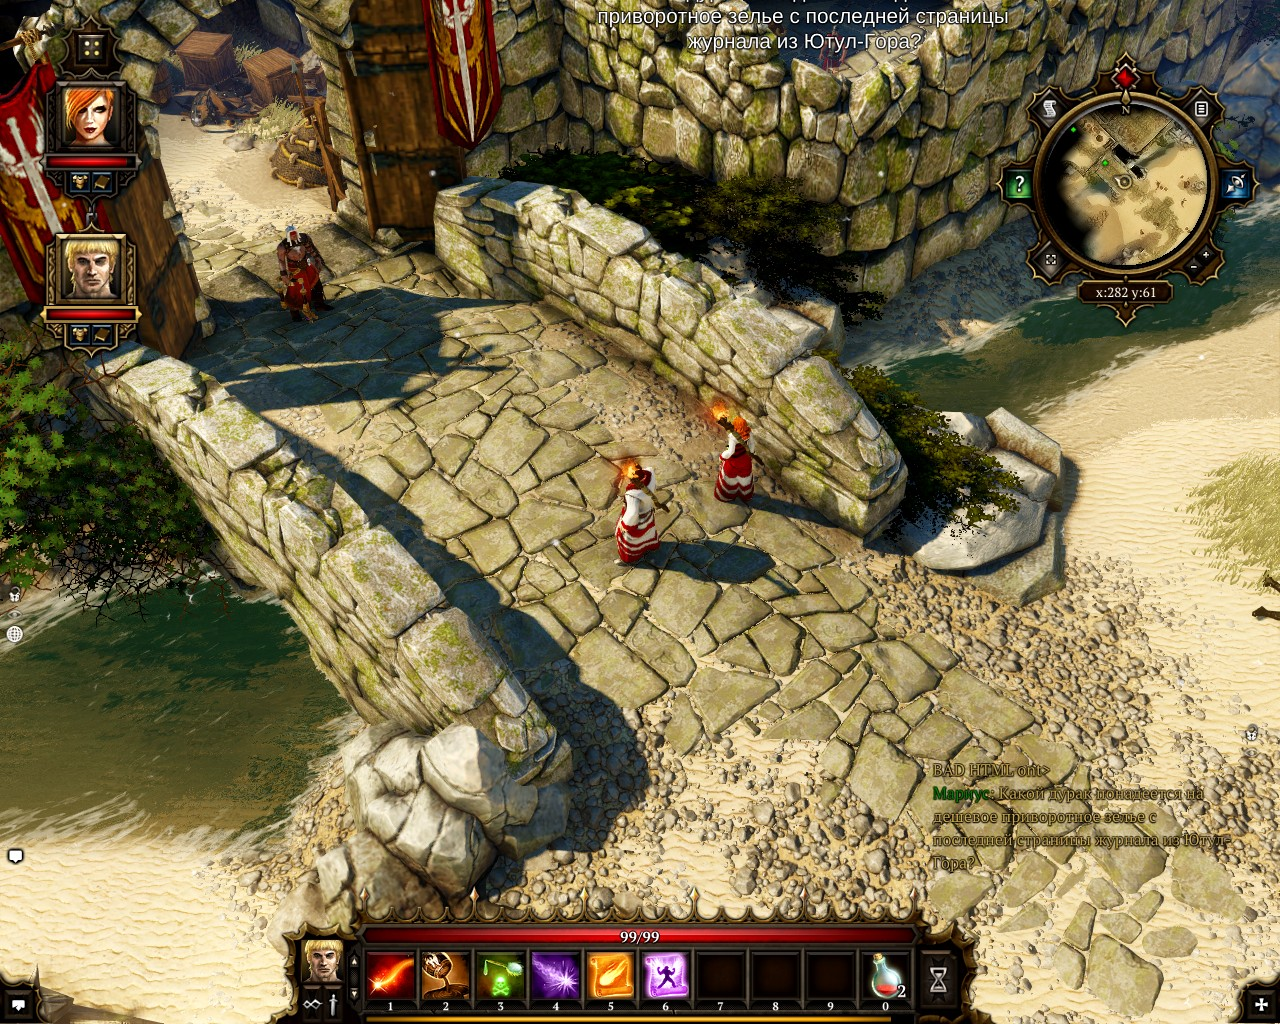 Divinity: Original Sin - Enhanced Edition (2014) PC - Скриншот 3